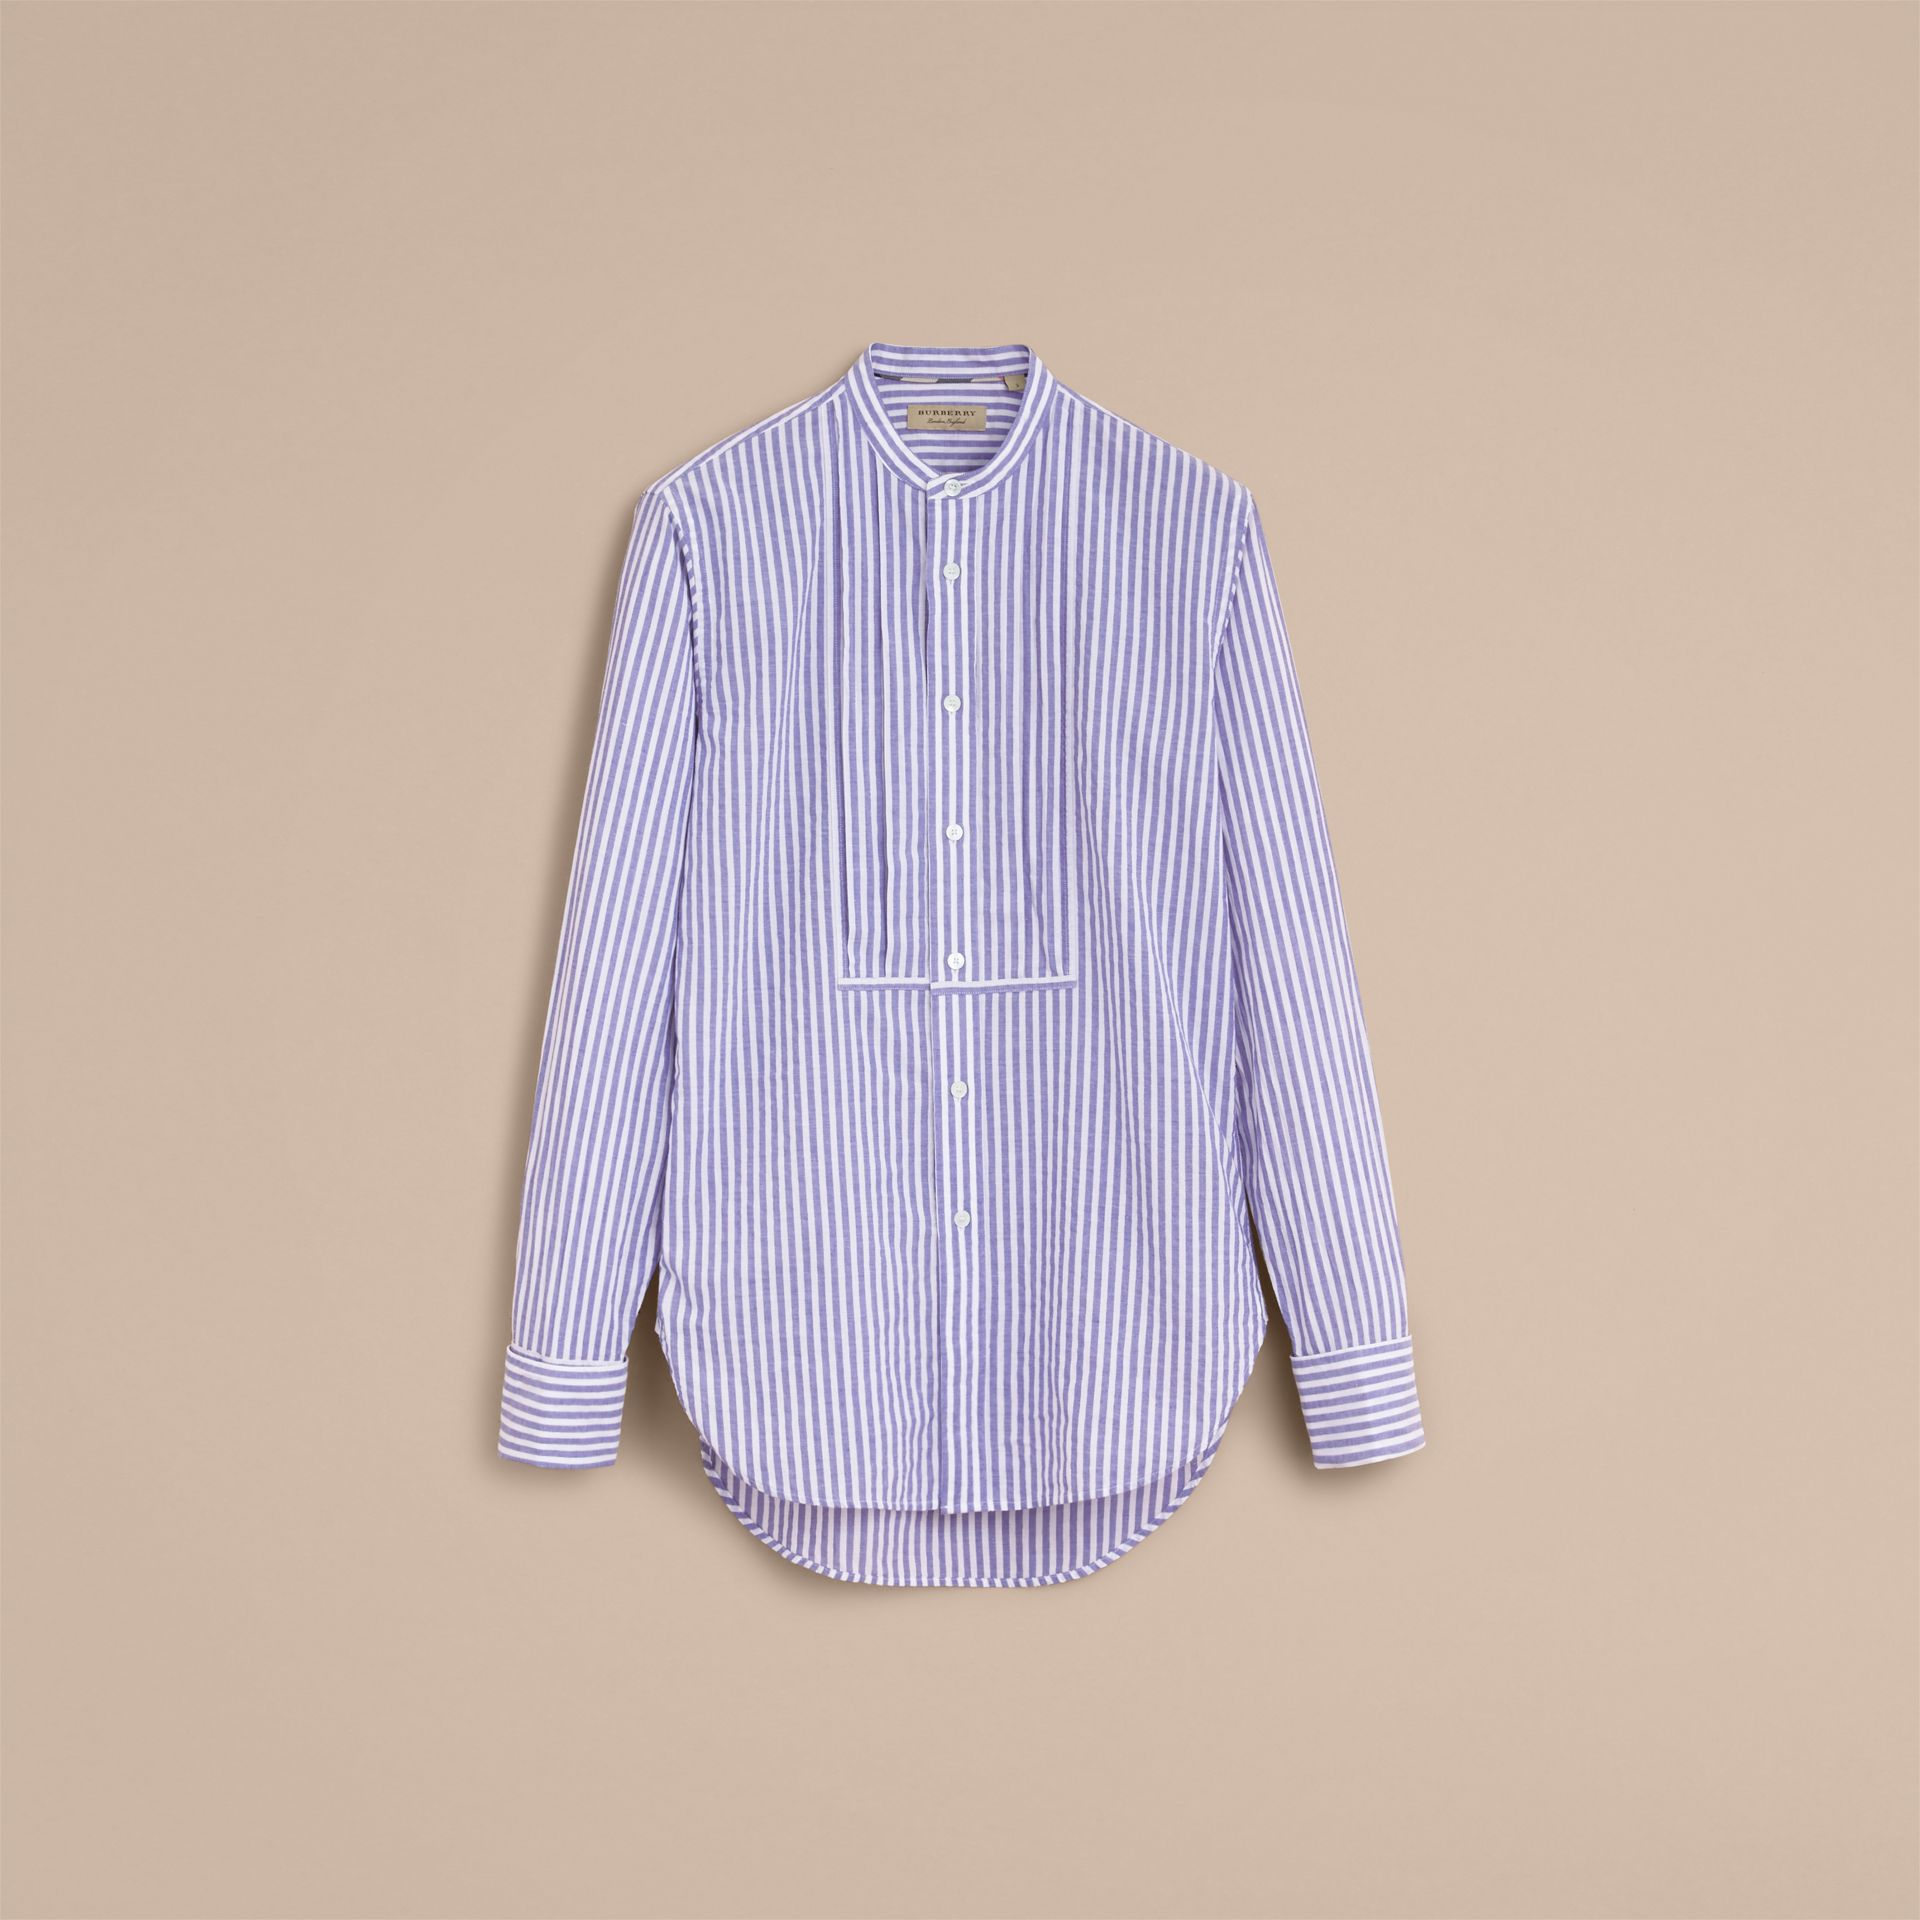 Unisex Grandad Collar Pleated Bib Striped Cotton Shirt in Pale Blue/white - Women | Burberry - gallery image 4